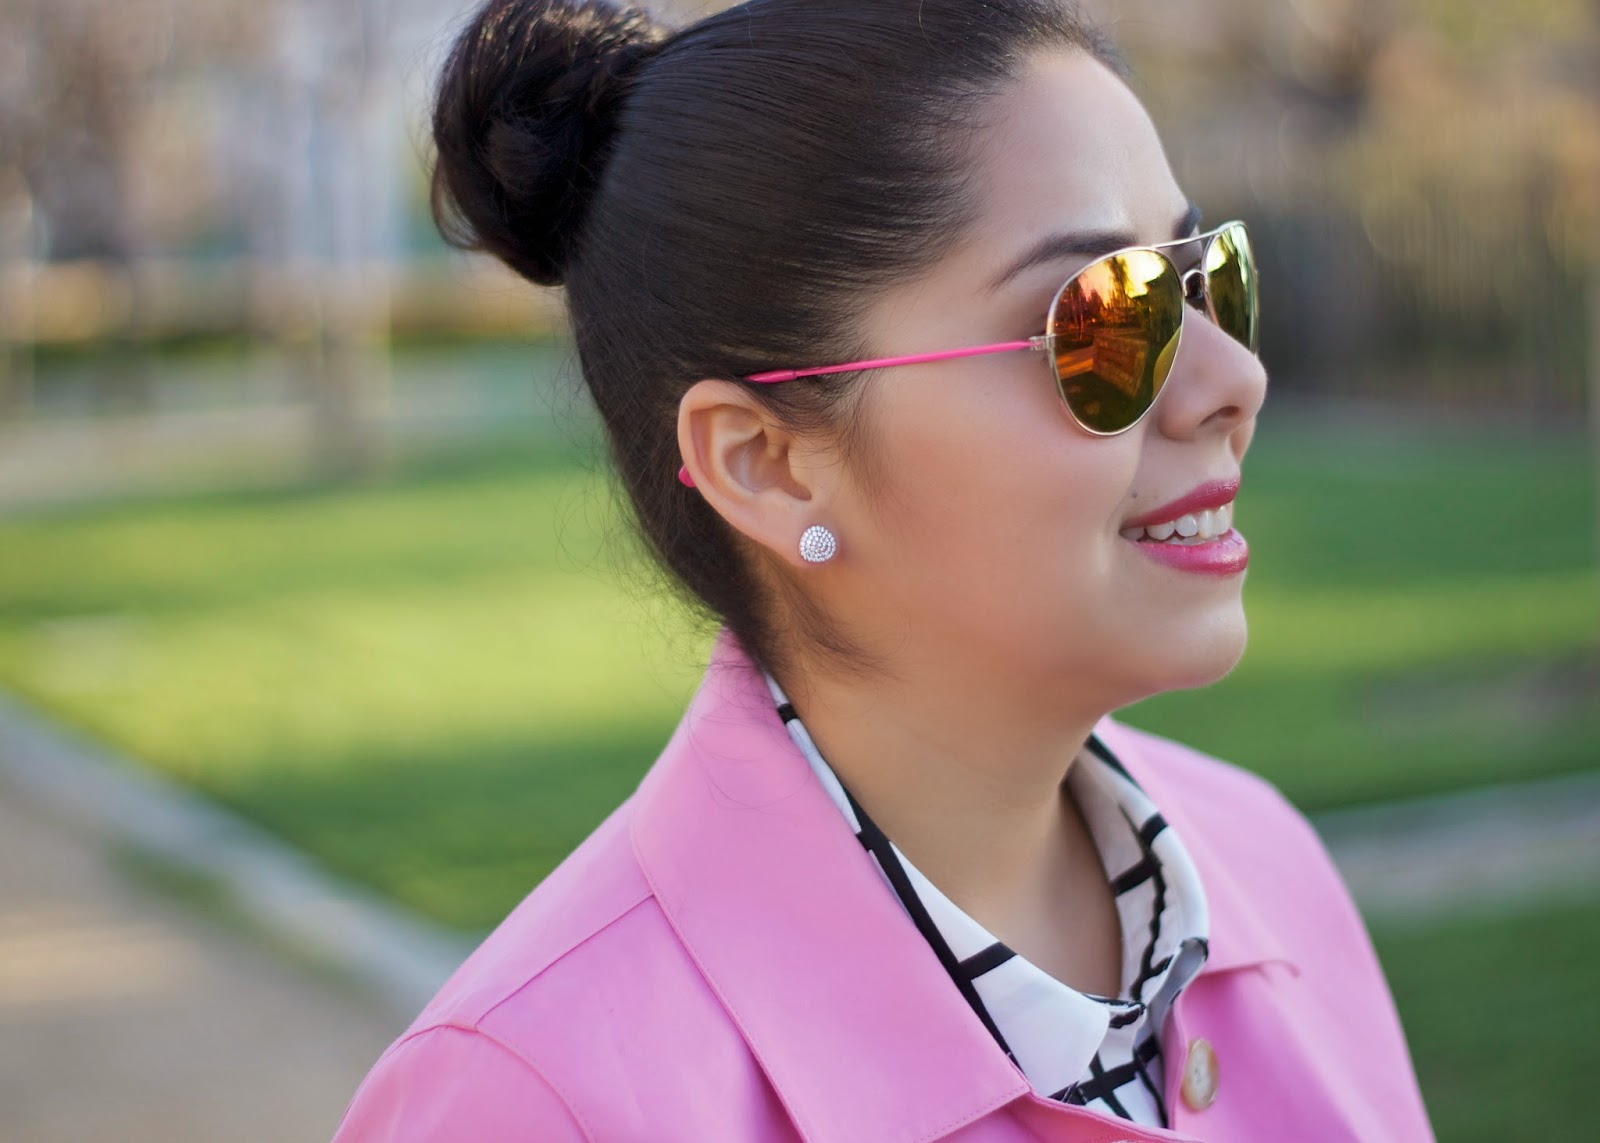 ASJewelry earrings, forever21 pink sunglasses